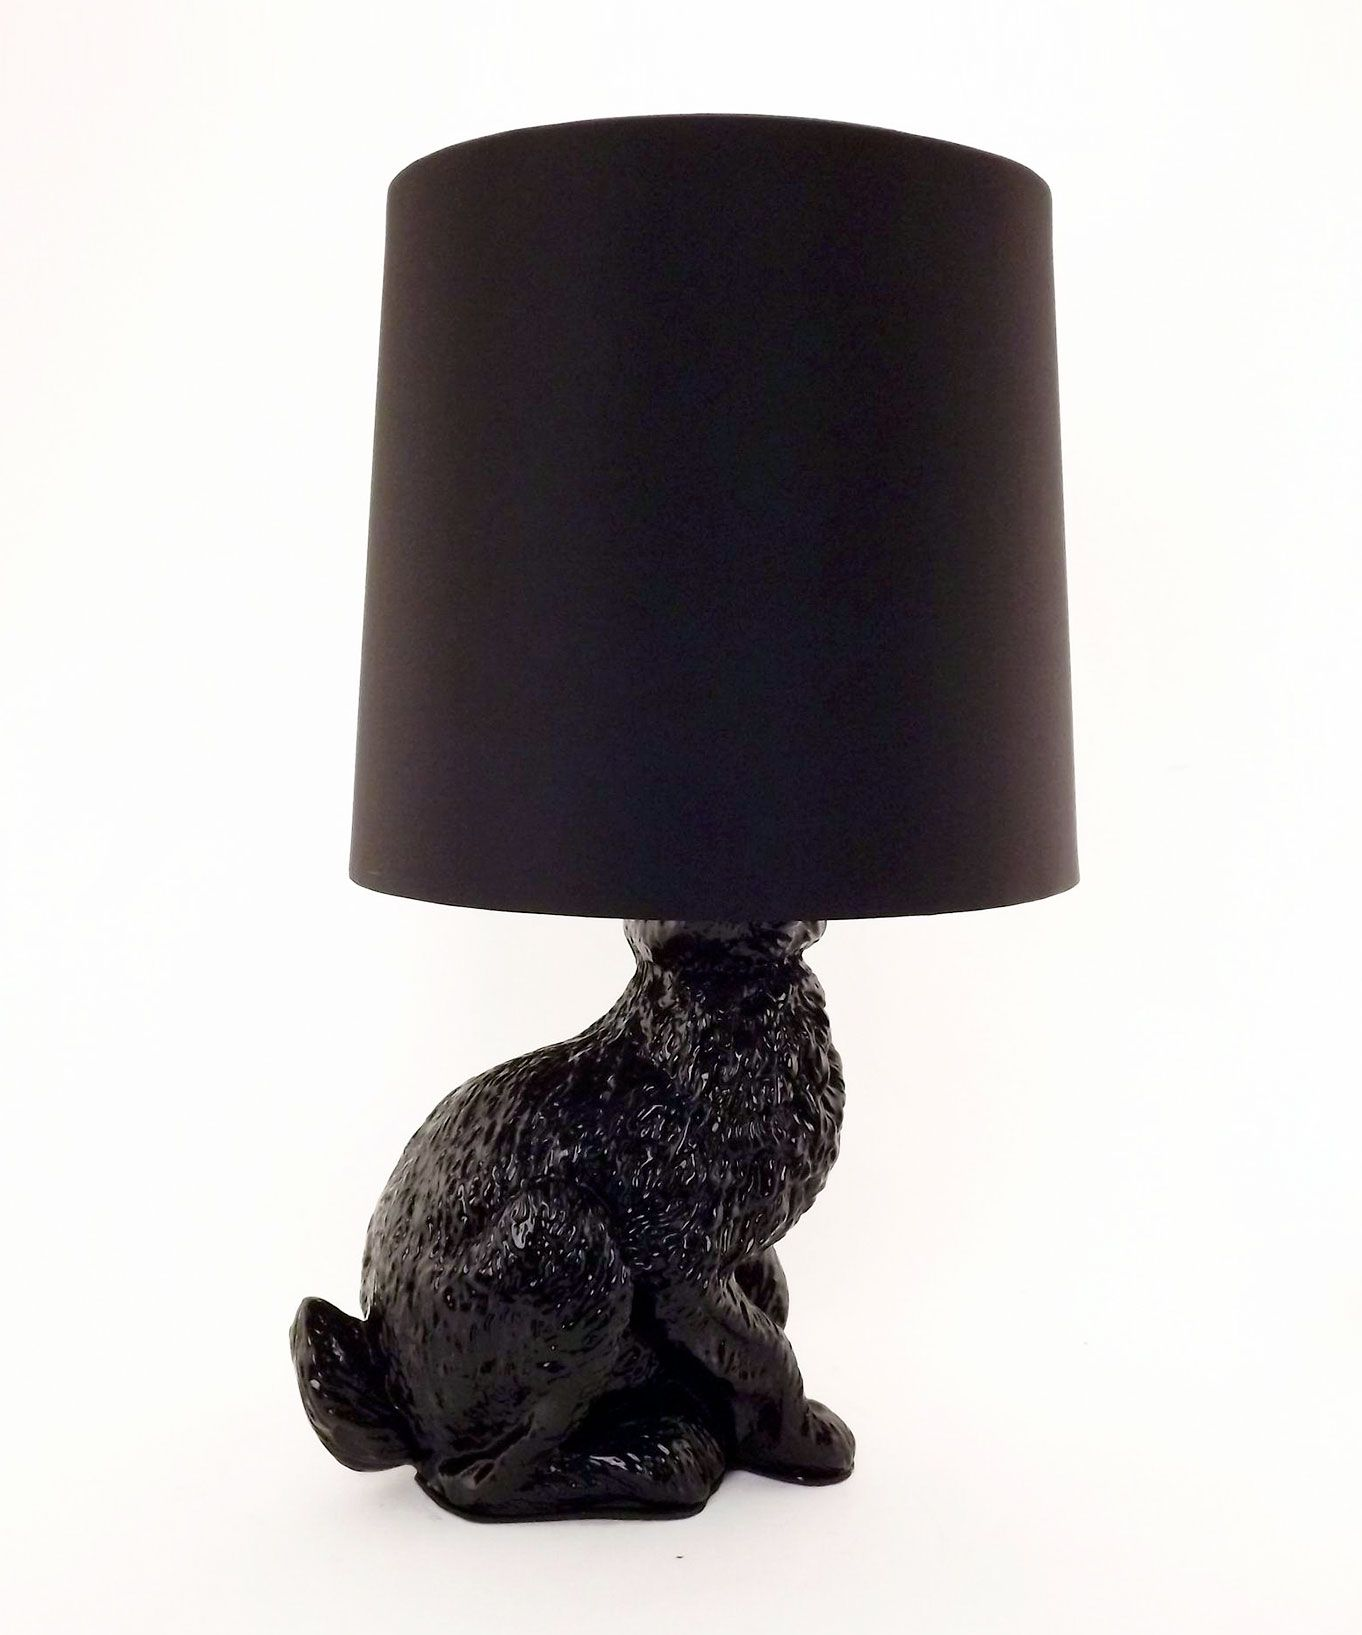 Diy Idea Use A Bottle Lamp Converter Kit To Turn An Animal Ornament Into A Table Lamp Hare Lamp Dot Bo I Like Lamp Unique Modern Furniture Diy Table Lamp